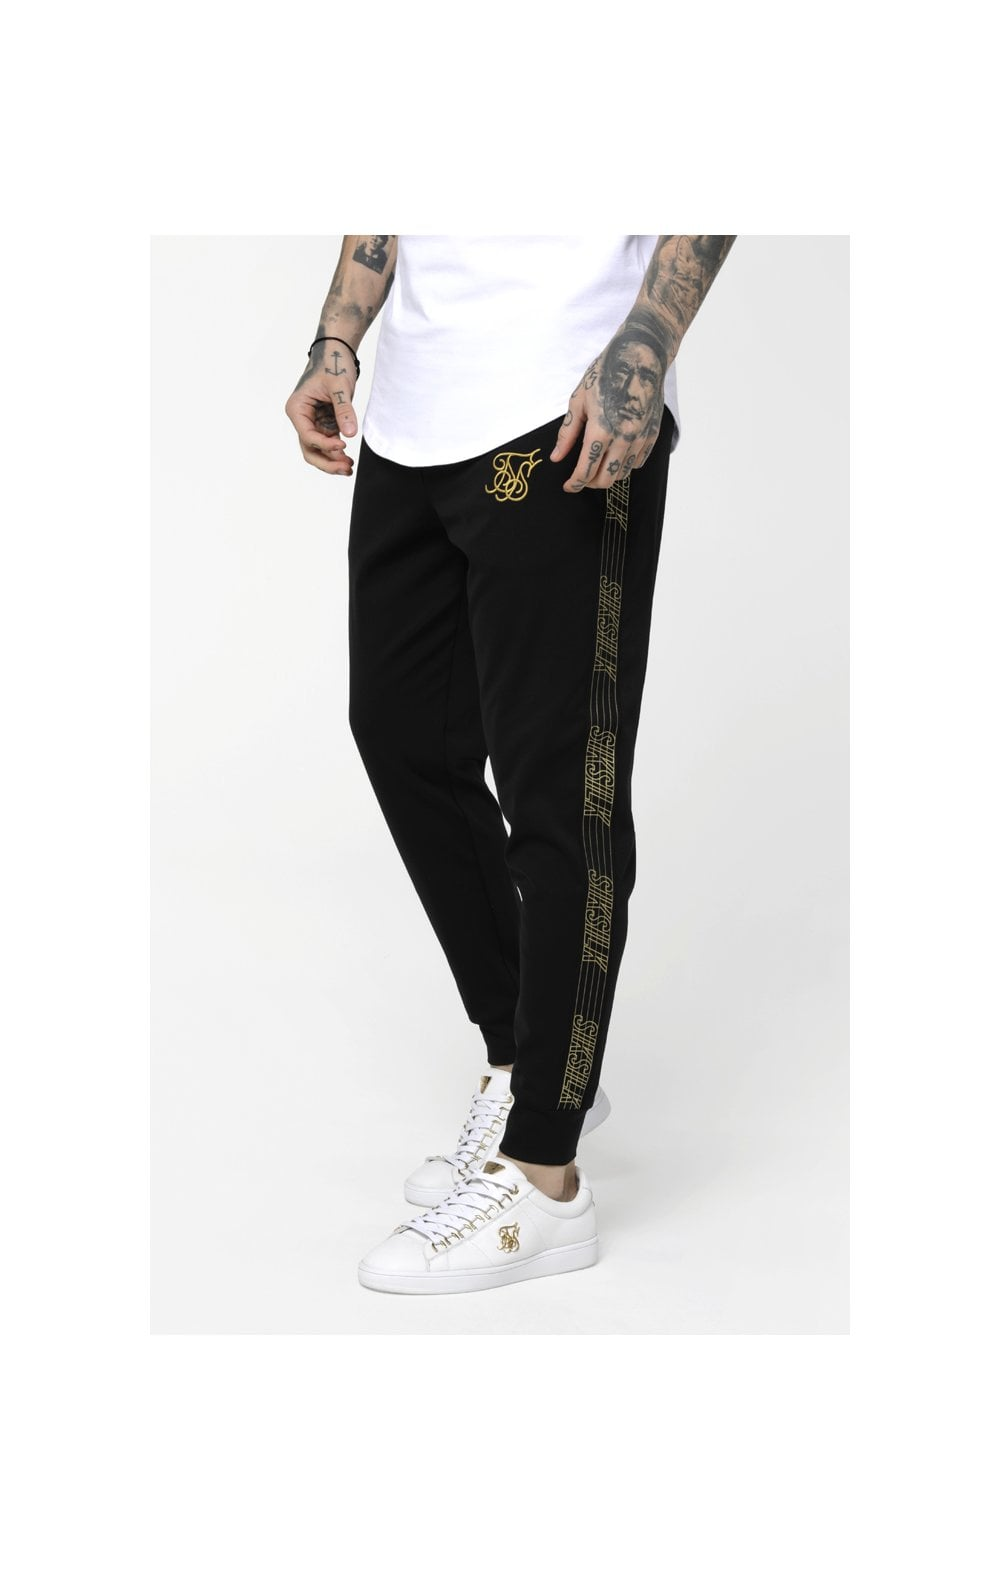 Load image into Gallery viewer, SikSilk Gold Edit Cuffed Cropped Runner Joggers - Black (2)